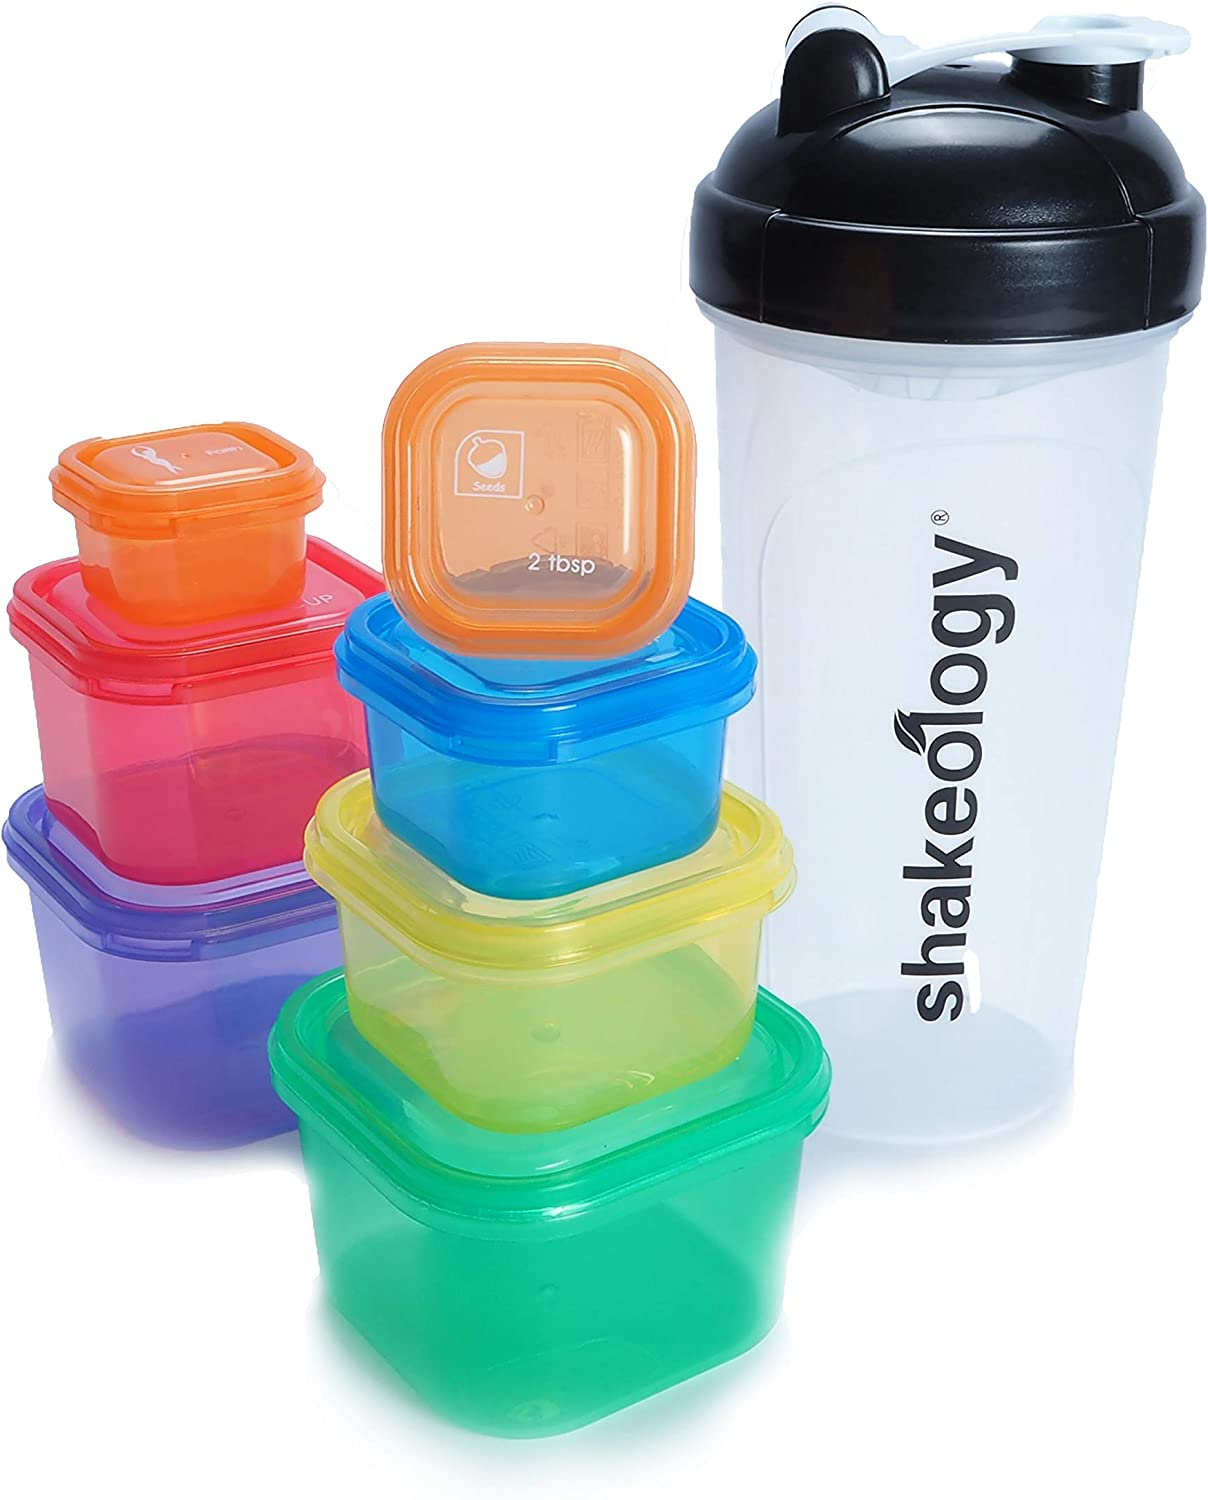 Portion Control Containers, 7 pcs, With White Shaker Bottle, 21 Day Lose Weight System, Containers and Food Plan, Food Storage Containers Easy to Lose Weight, Lose Weight Fast For Women